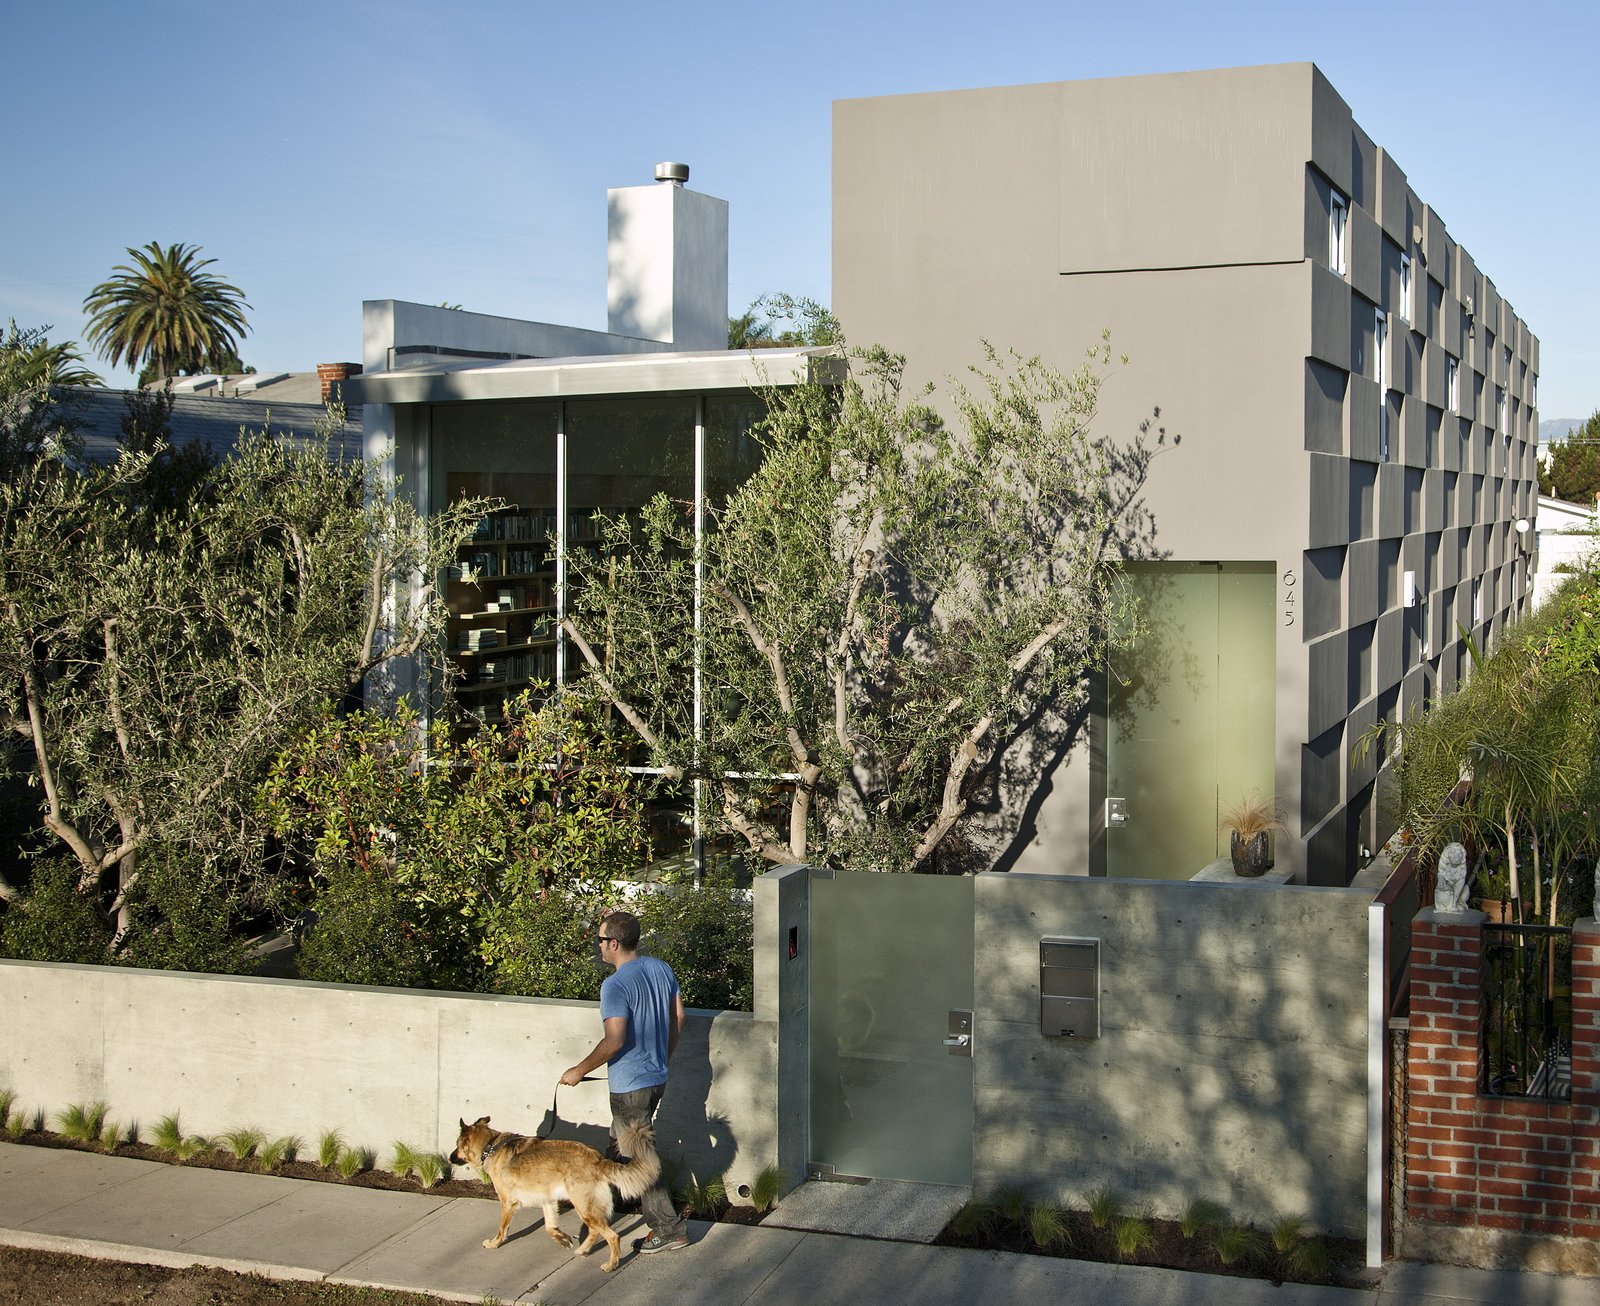 The Goodman Residence is located on a typical narrow lot in the trendy Venice Beach Neighborhood of Los Angeles.   Goodman Residence by Abramson Teiger Architects